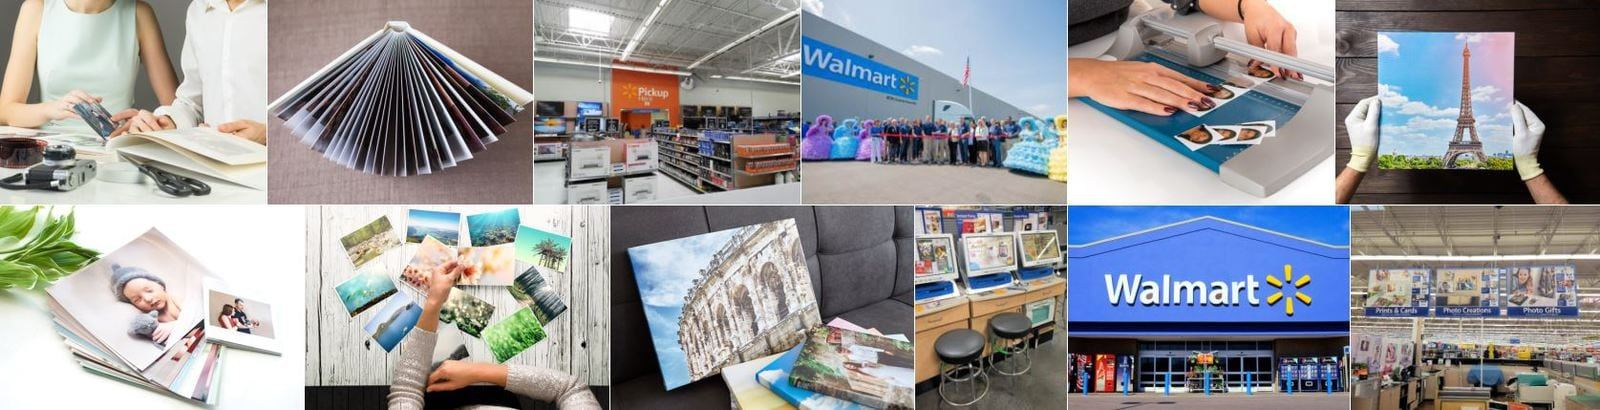 Walmart Photo Center of Broken Arrow